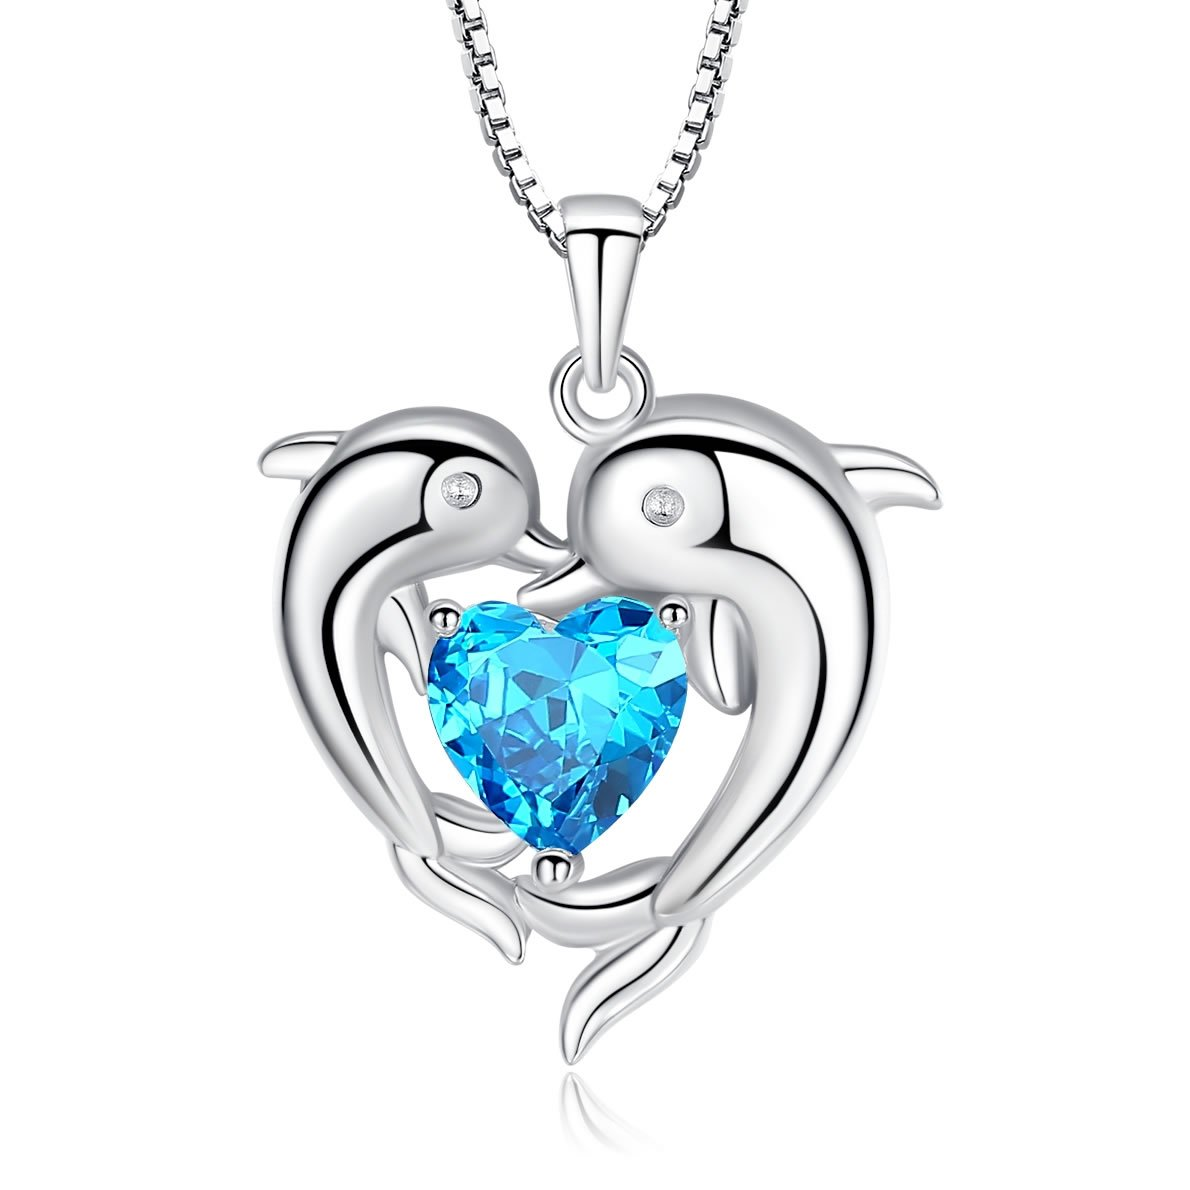 Sterling Silver Double Dolphin with Light Blue CZ Heart Pendant Necklace, Jewelry for Women, Girl, 18'' (Sea Blue)